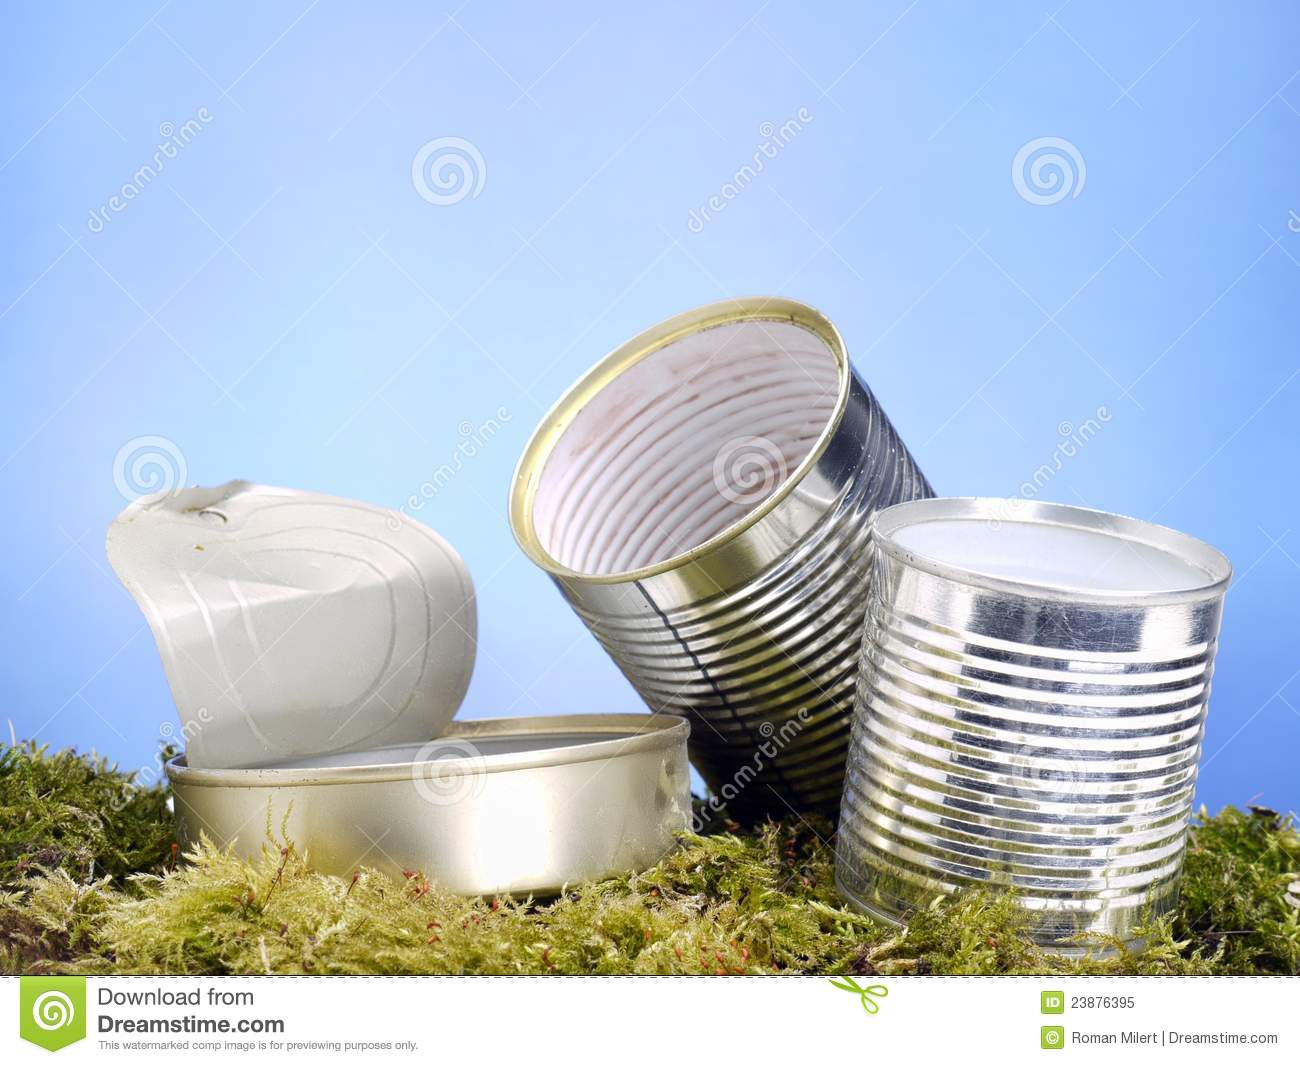 Empty metal cans in the grass